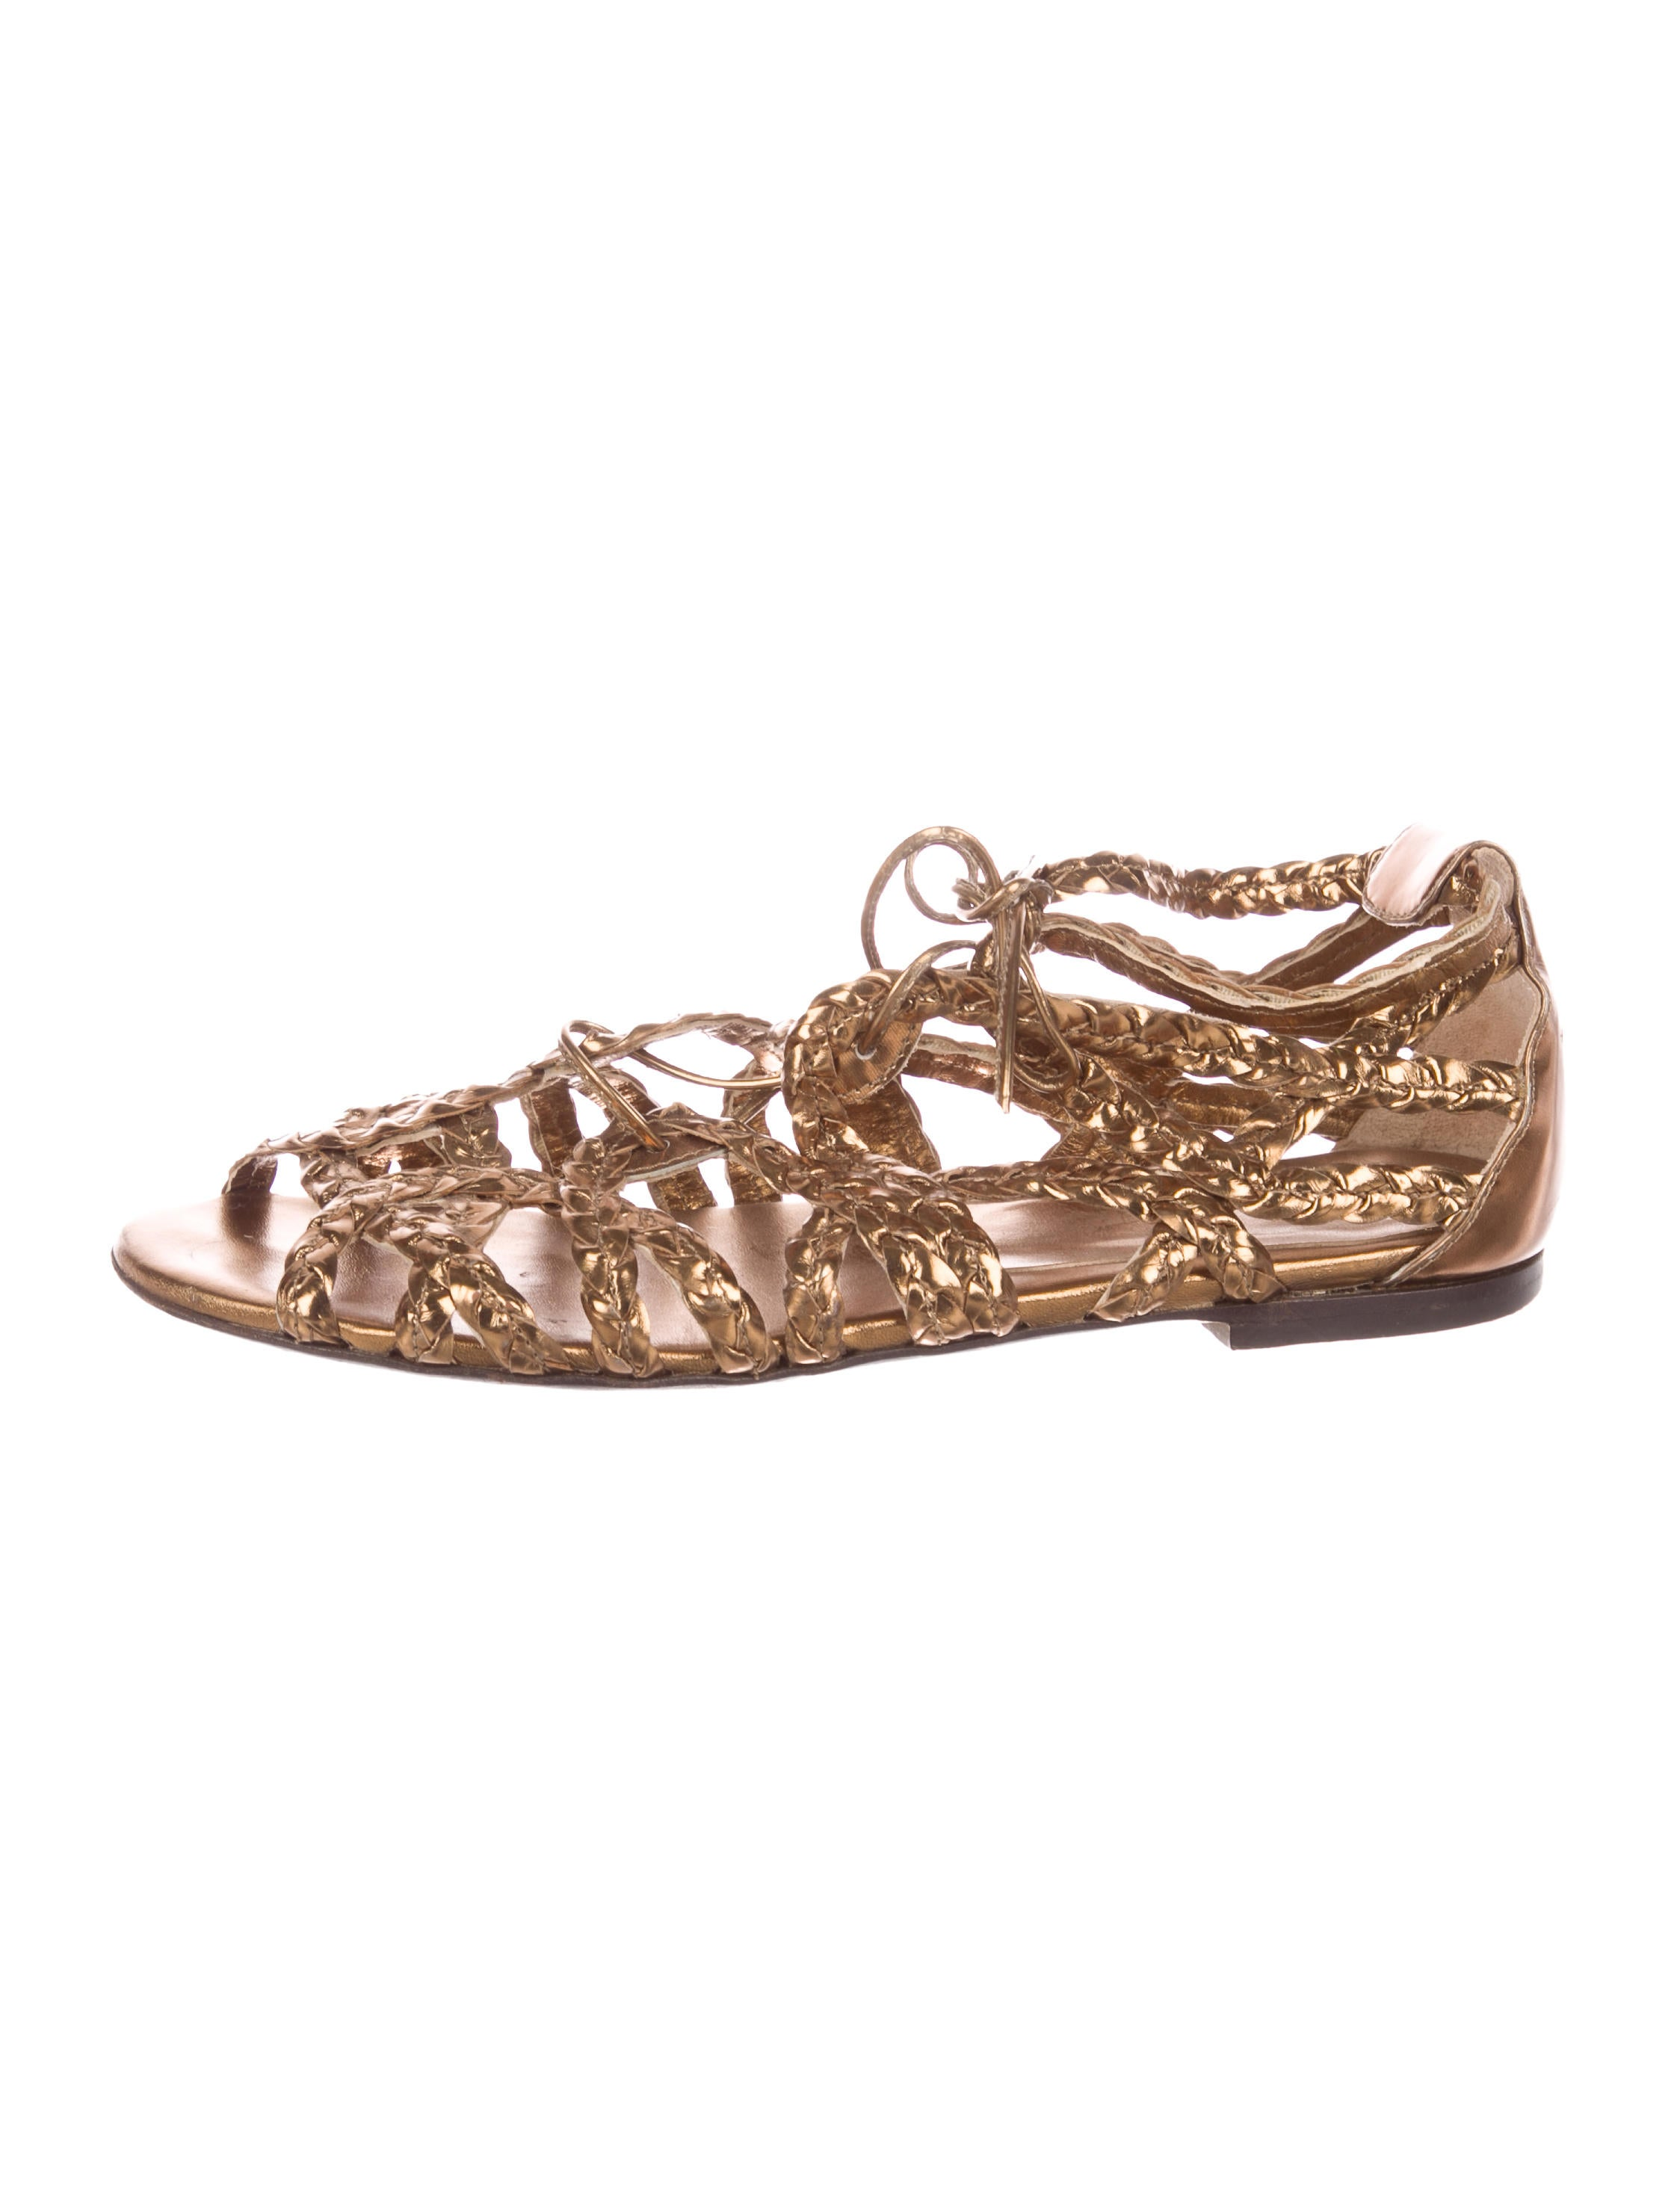 Jil Sander Braided Caged Sandals clearance marketable largest supplier for sale sale wholesale price cheap sale big discount recommend online e5mmzj